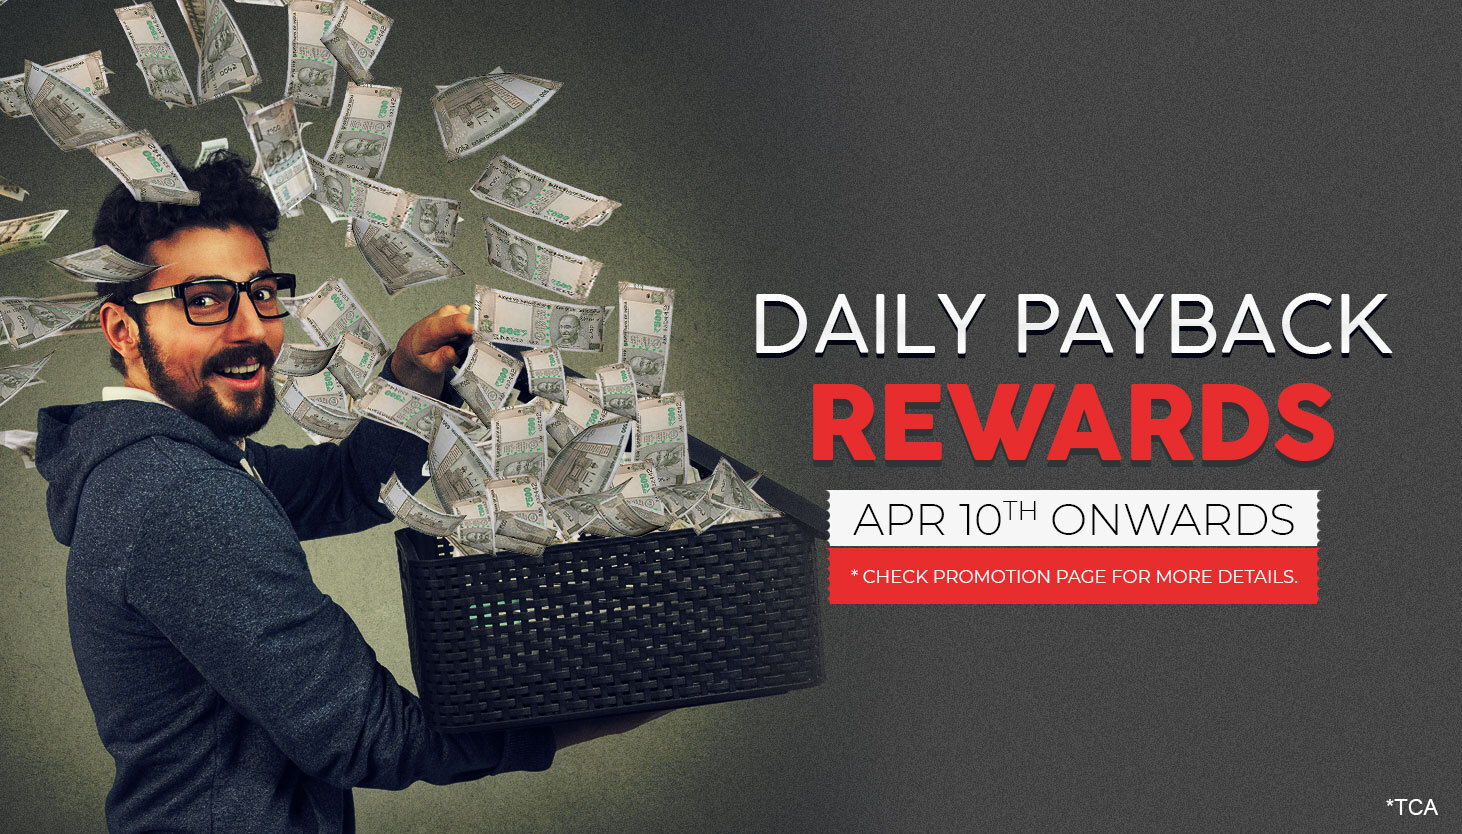 Daily Payback Rewards